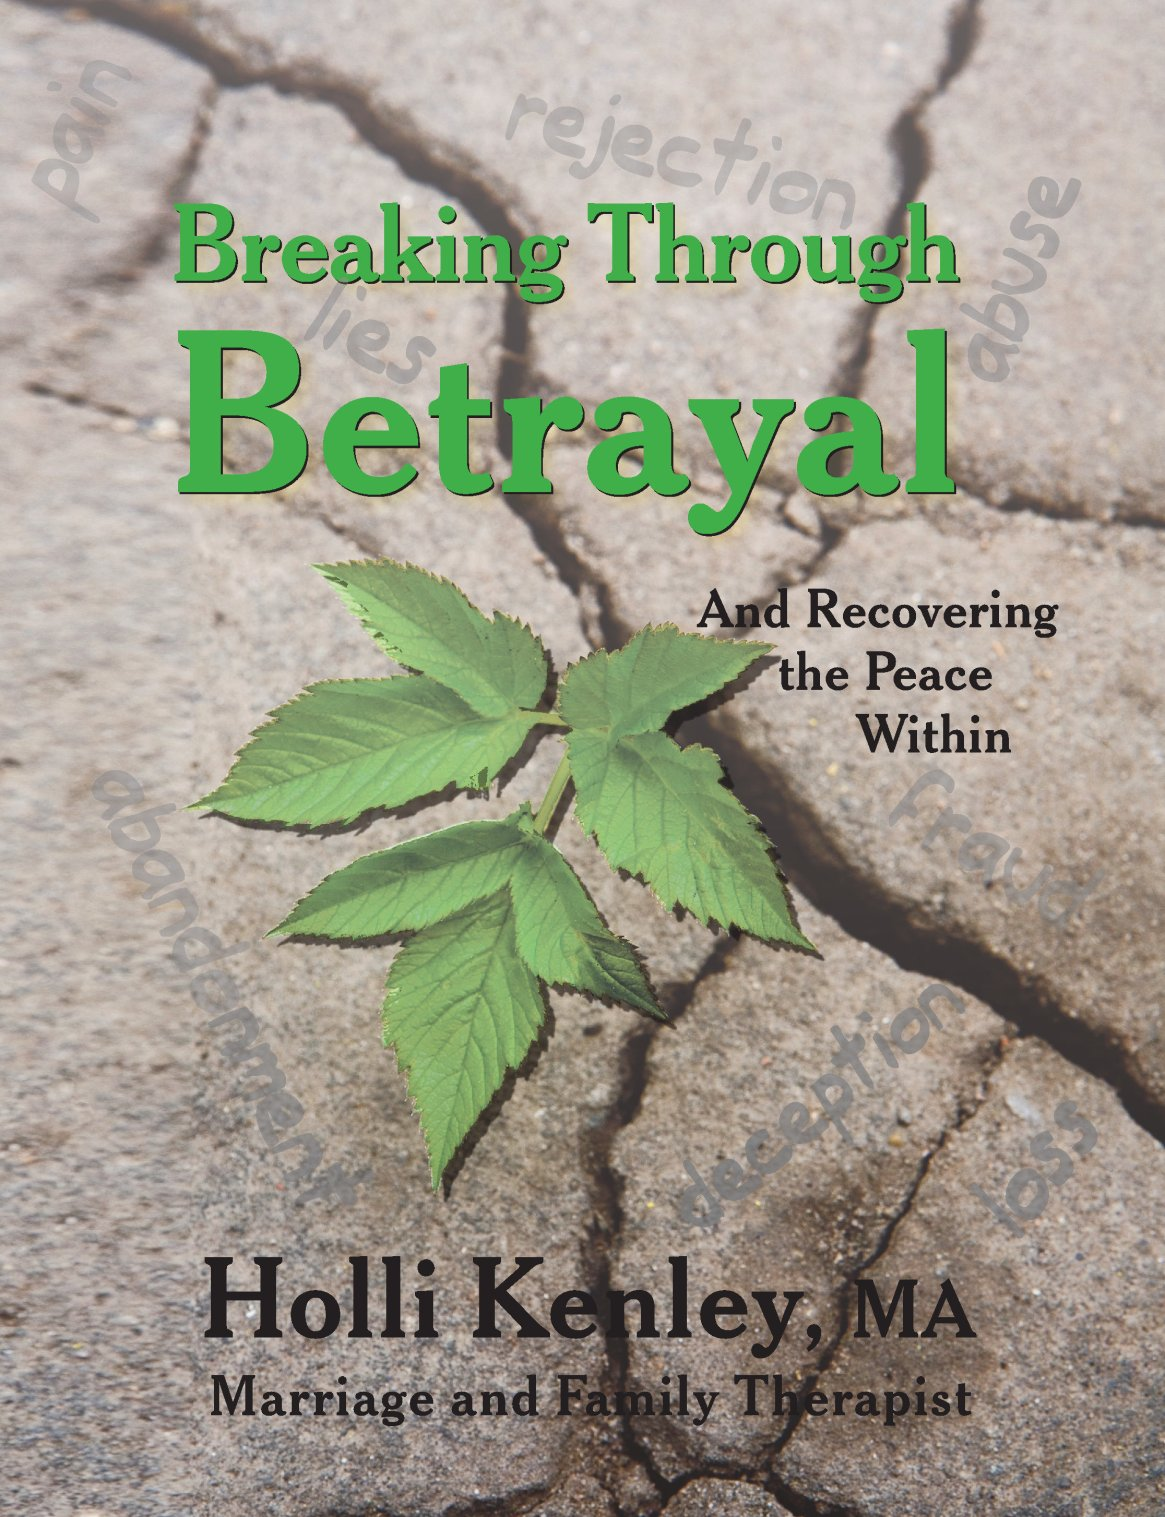 Breaking Through Betrayal: And Recovering the Peace Within 978-1-61599-009-2